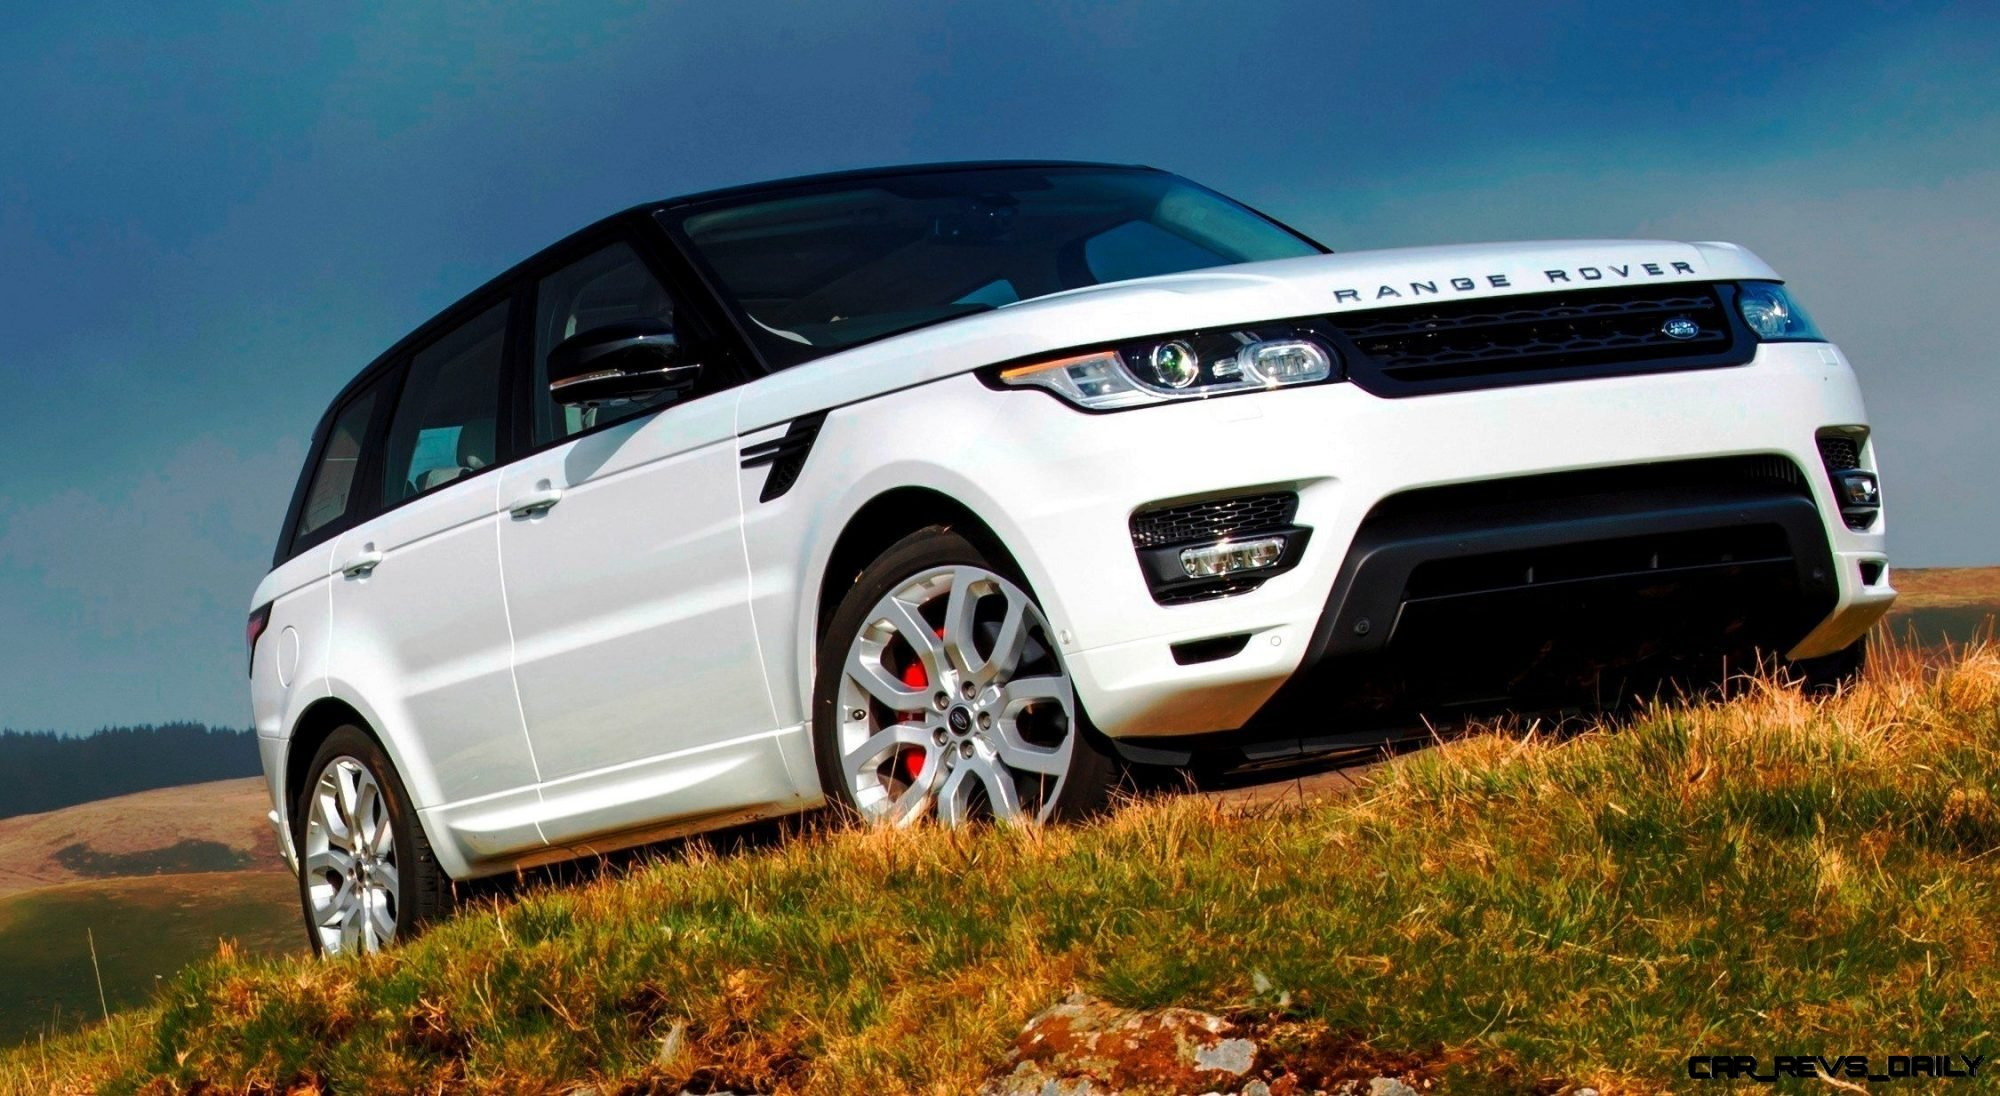 Range Rover Asks Wanna Play IamDriven Contest